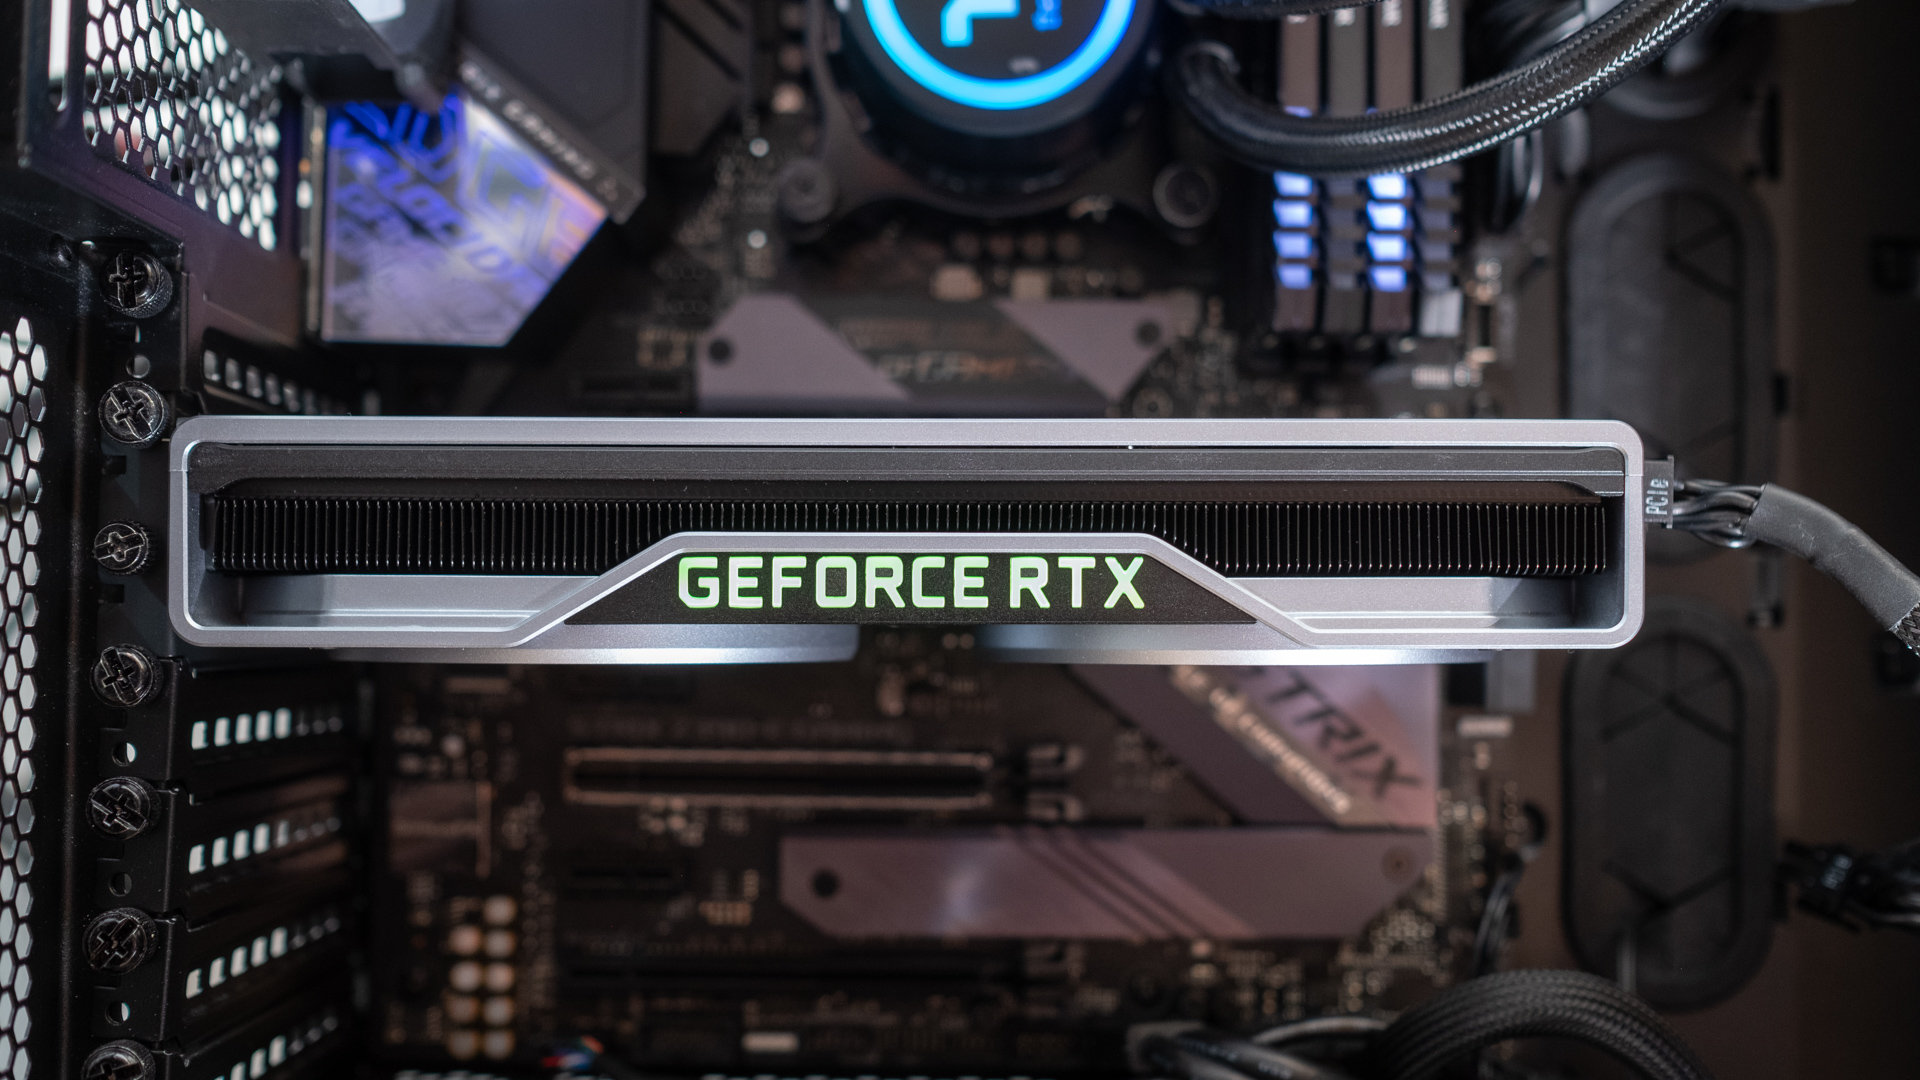 Good news for Nvidia as gamers embrace RTX graphics cards according to Steam hardware survey